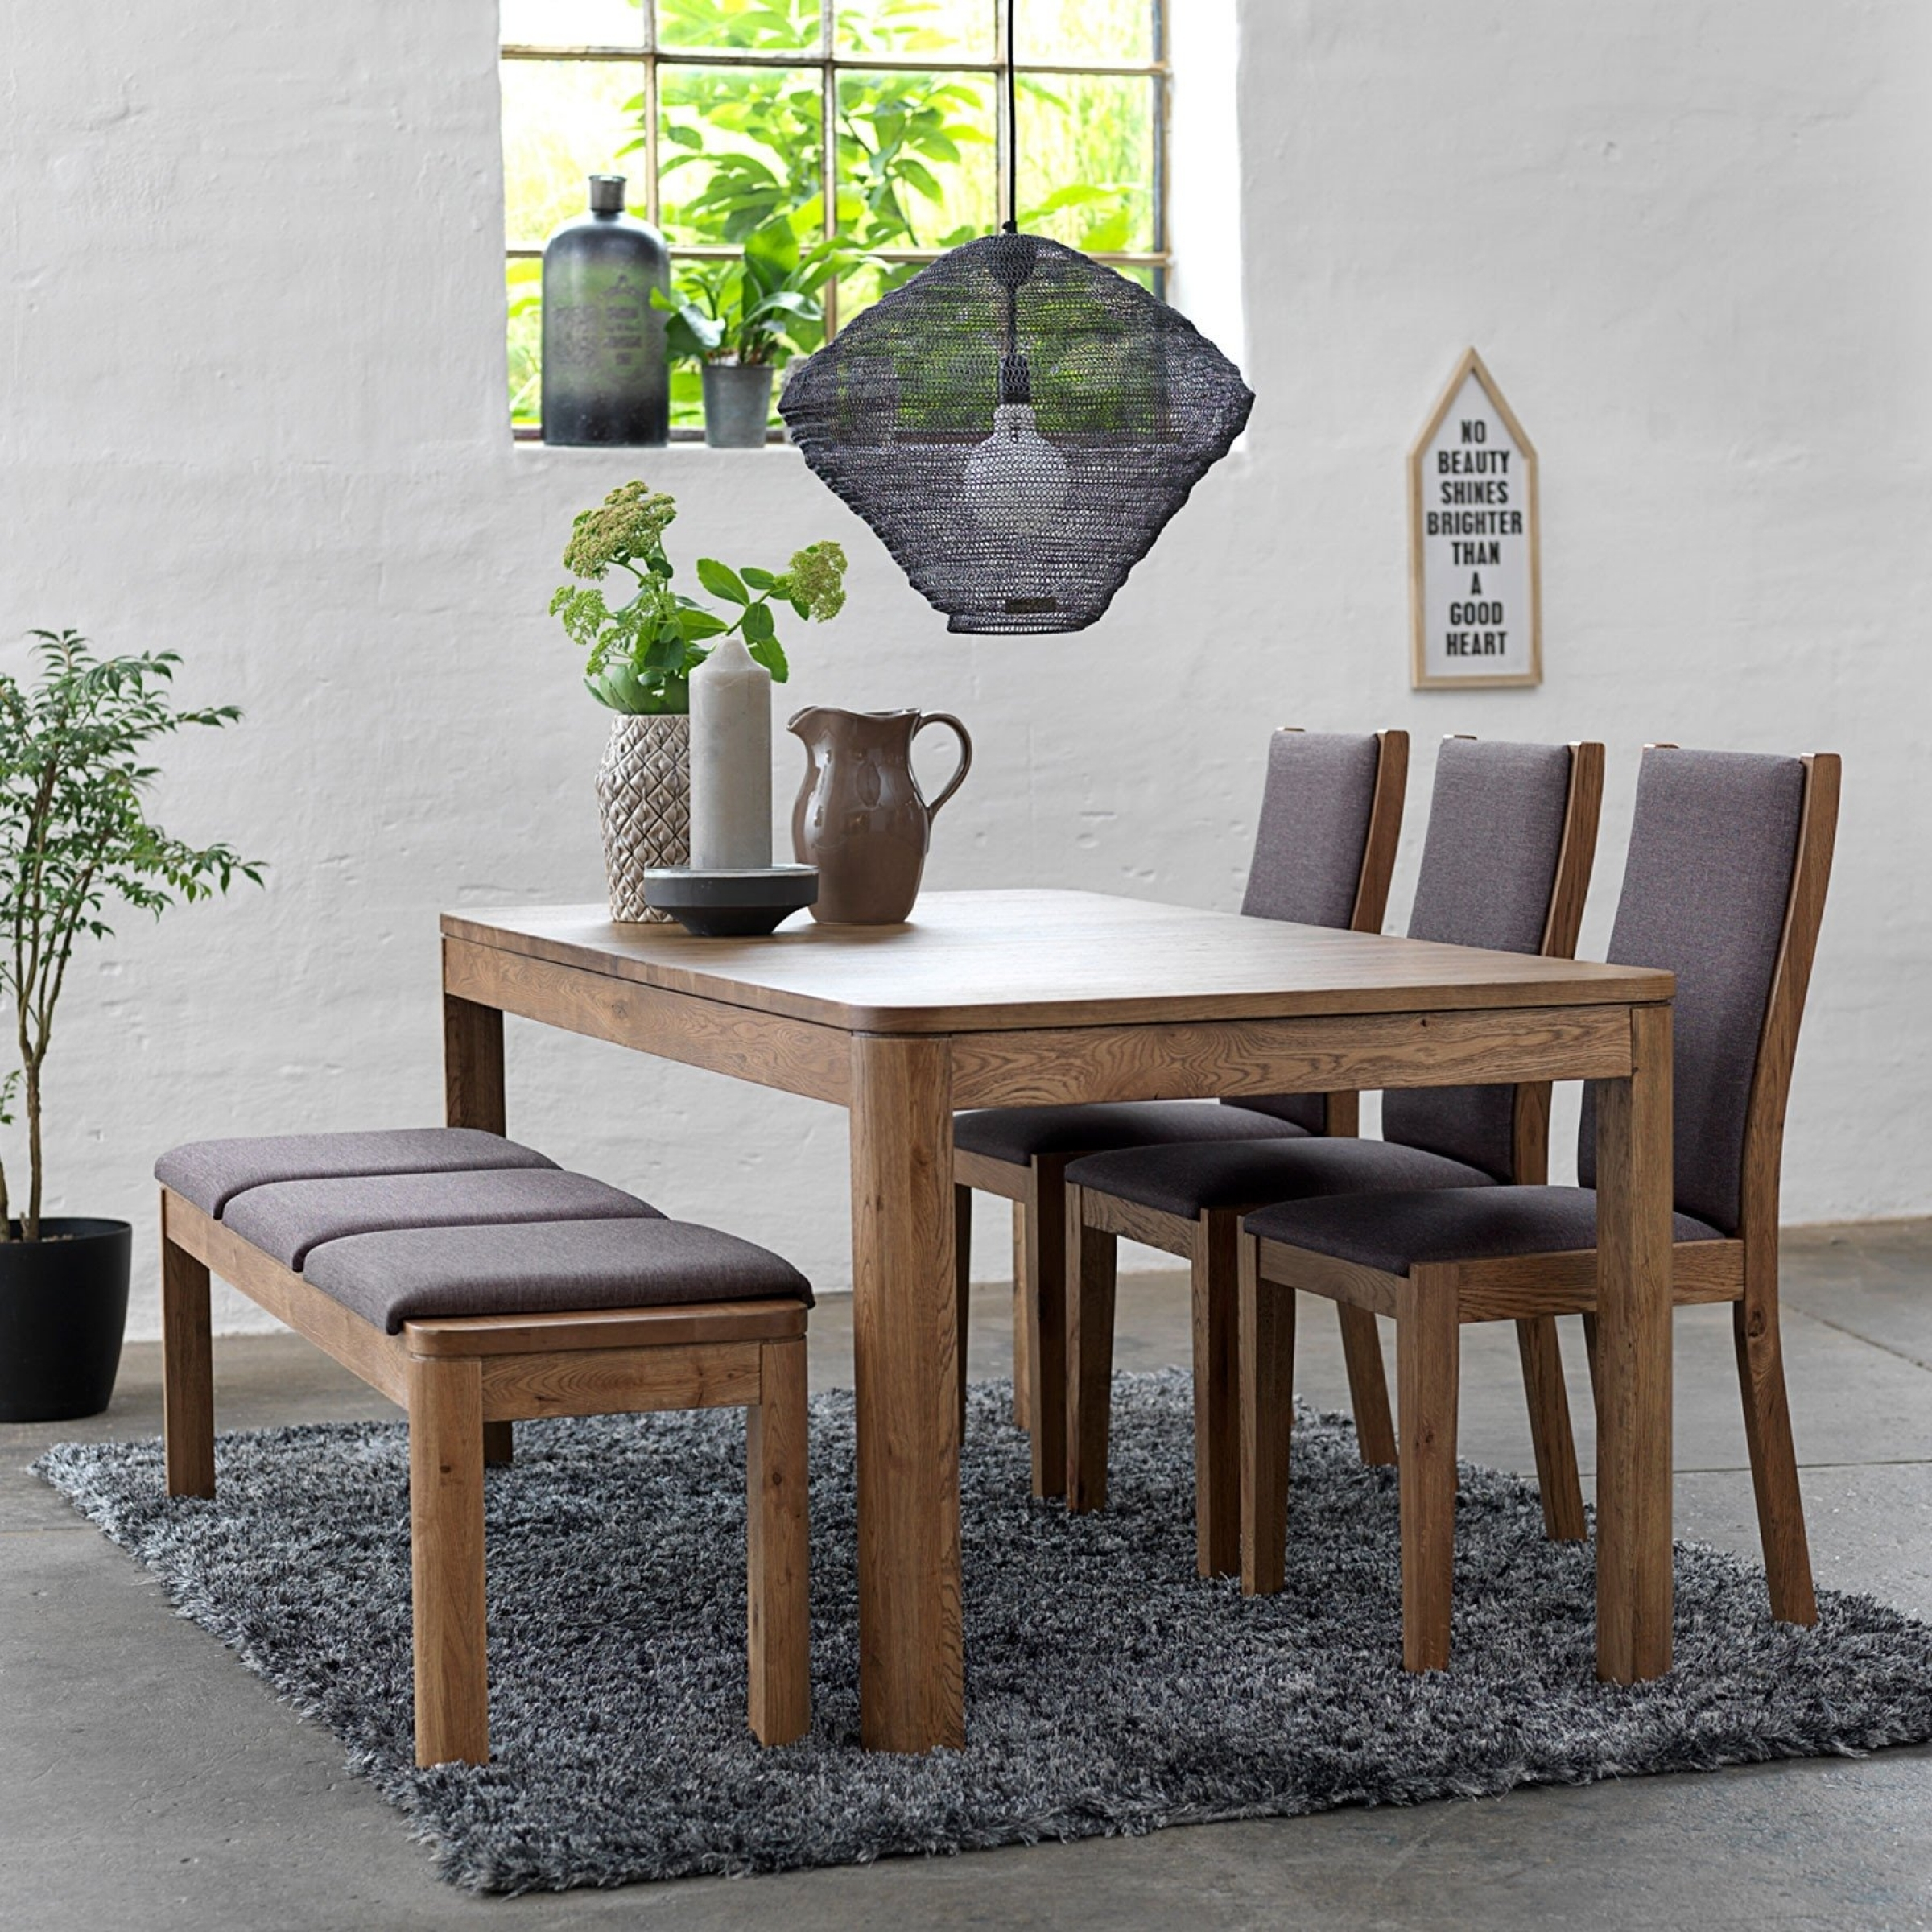 Dinette Bench Seating: 50+ Dining Table With Bench You'll Love In 2020